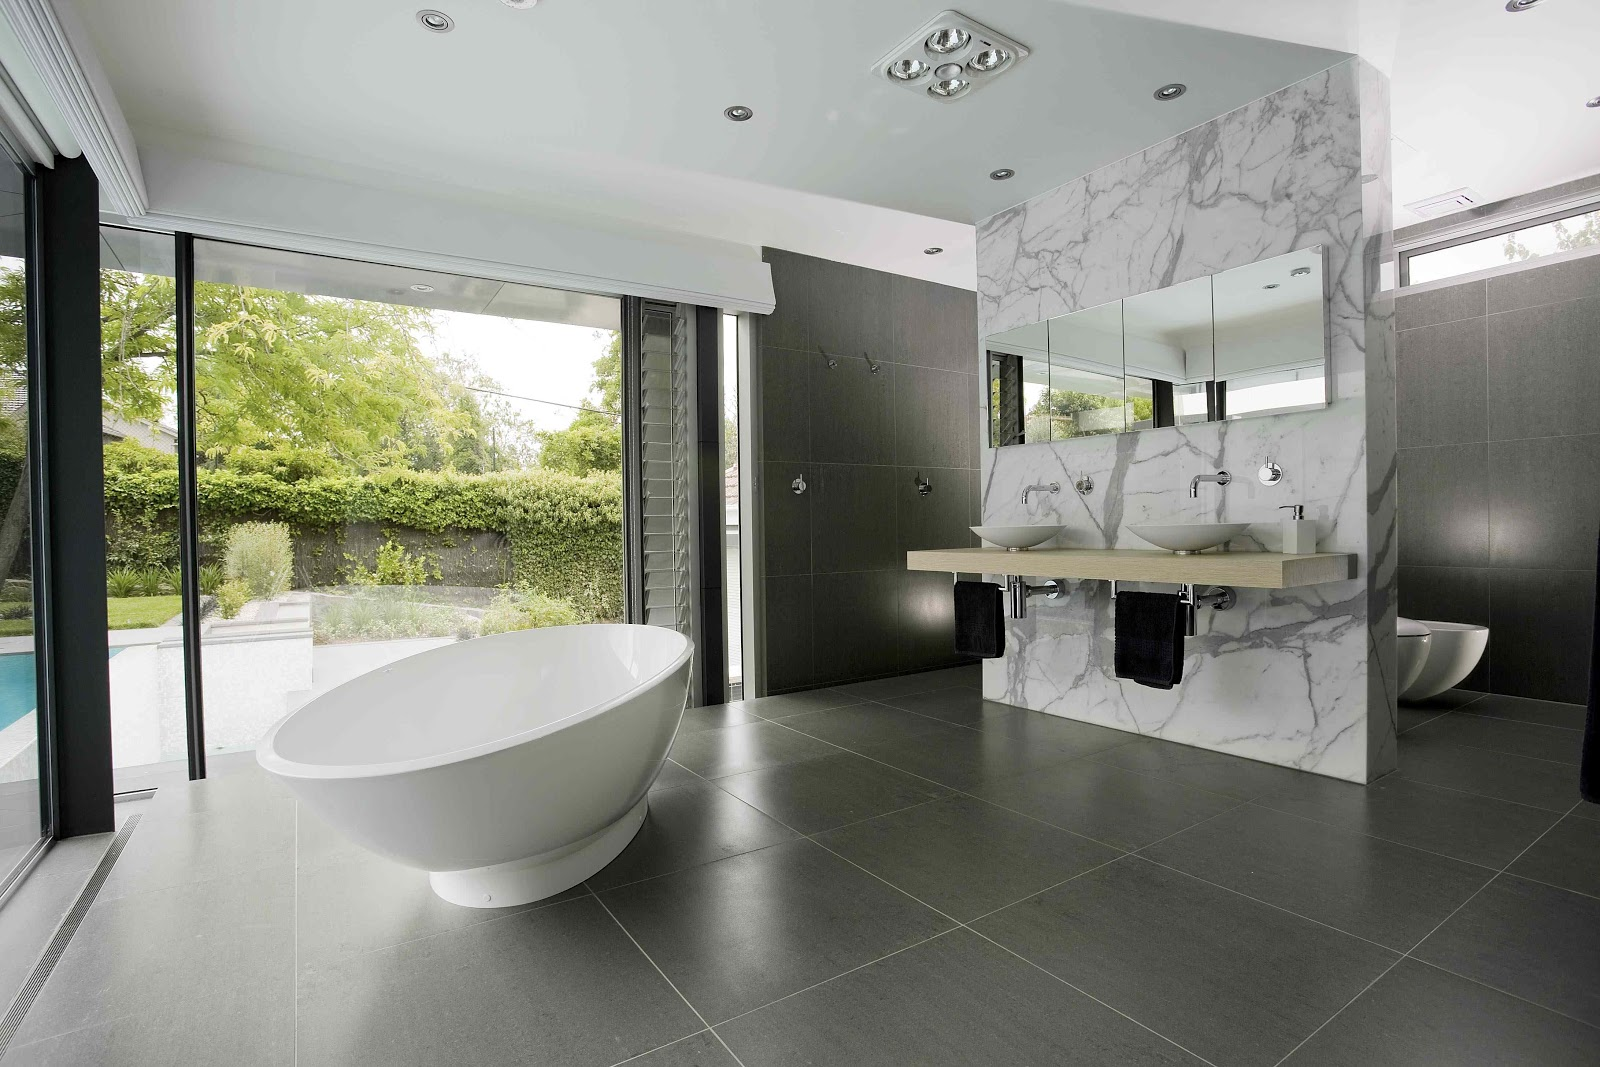 ensuite. Relax Does This Image Say Anything Else The Stunning Bath With